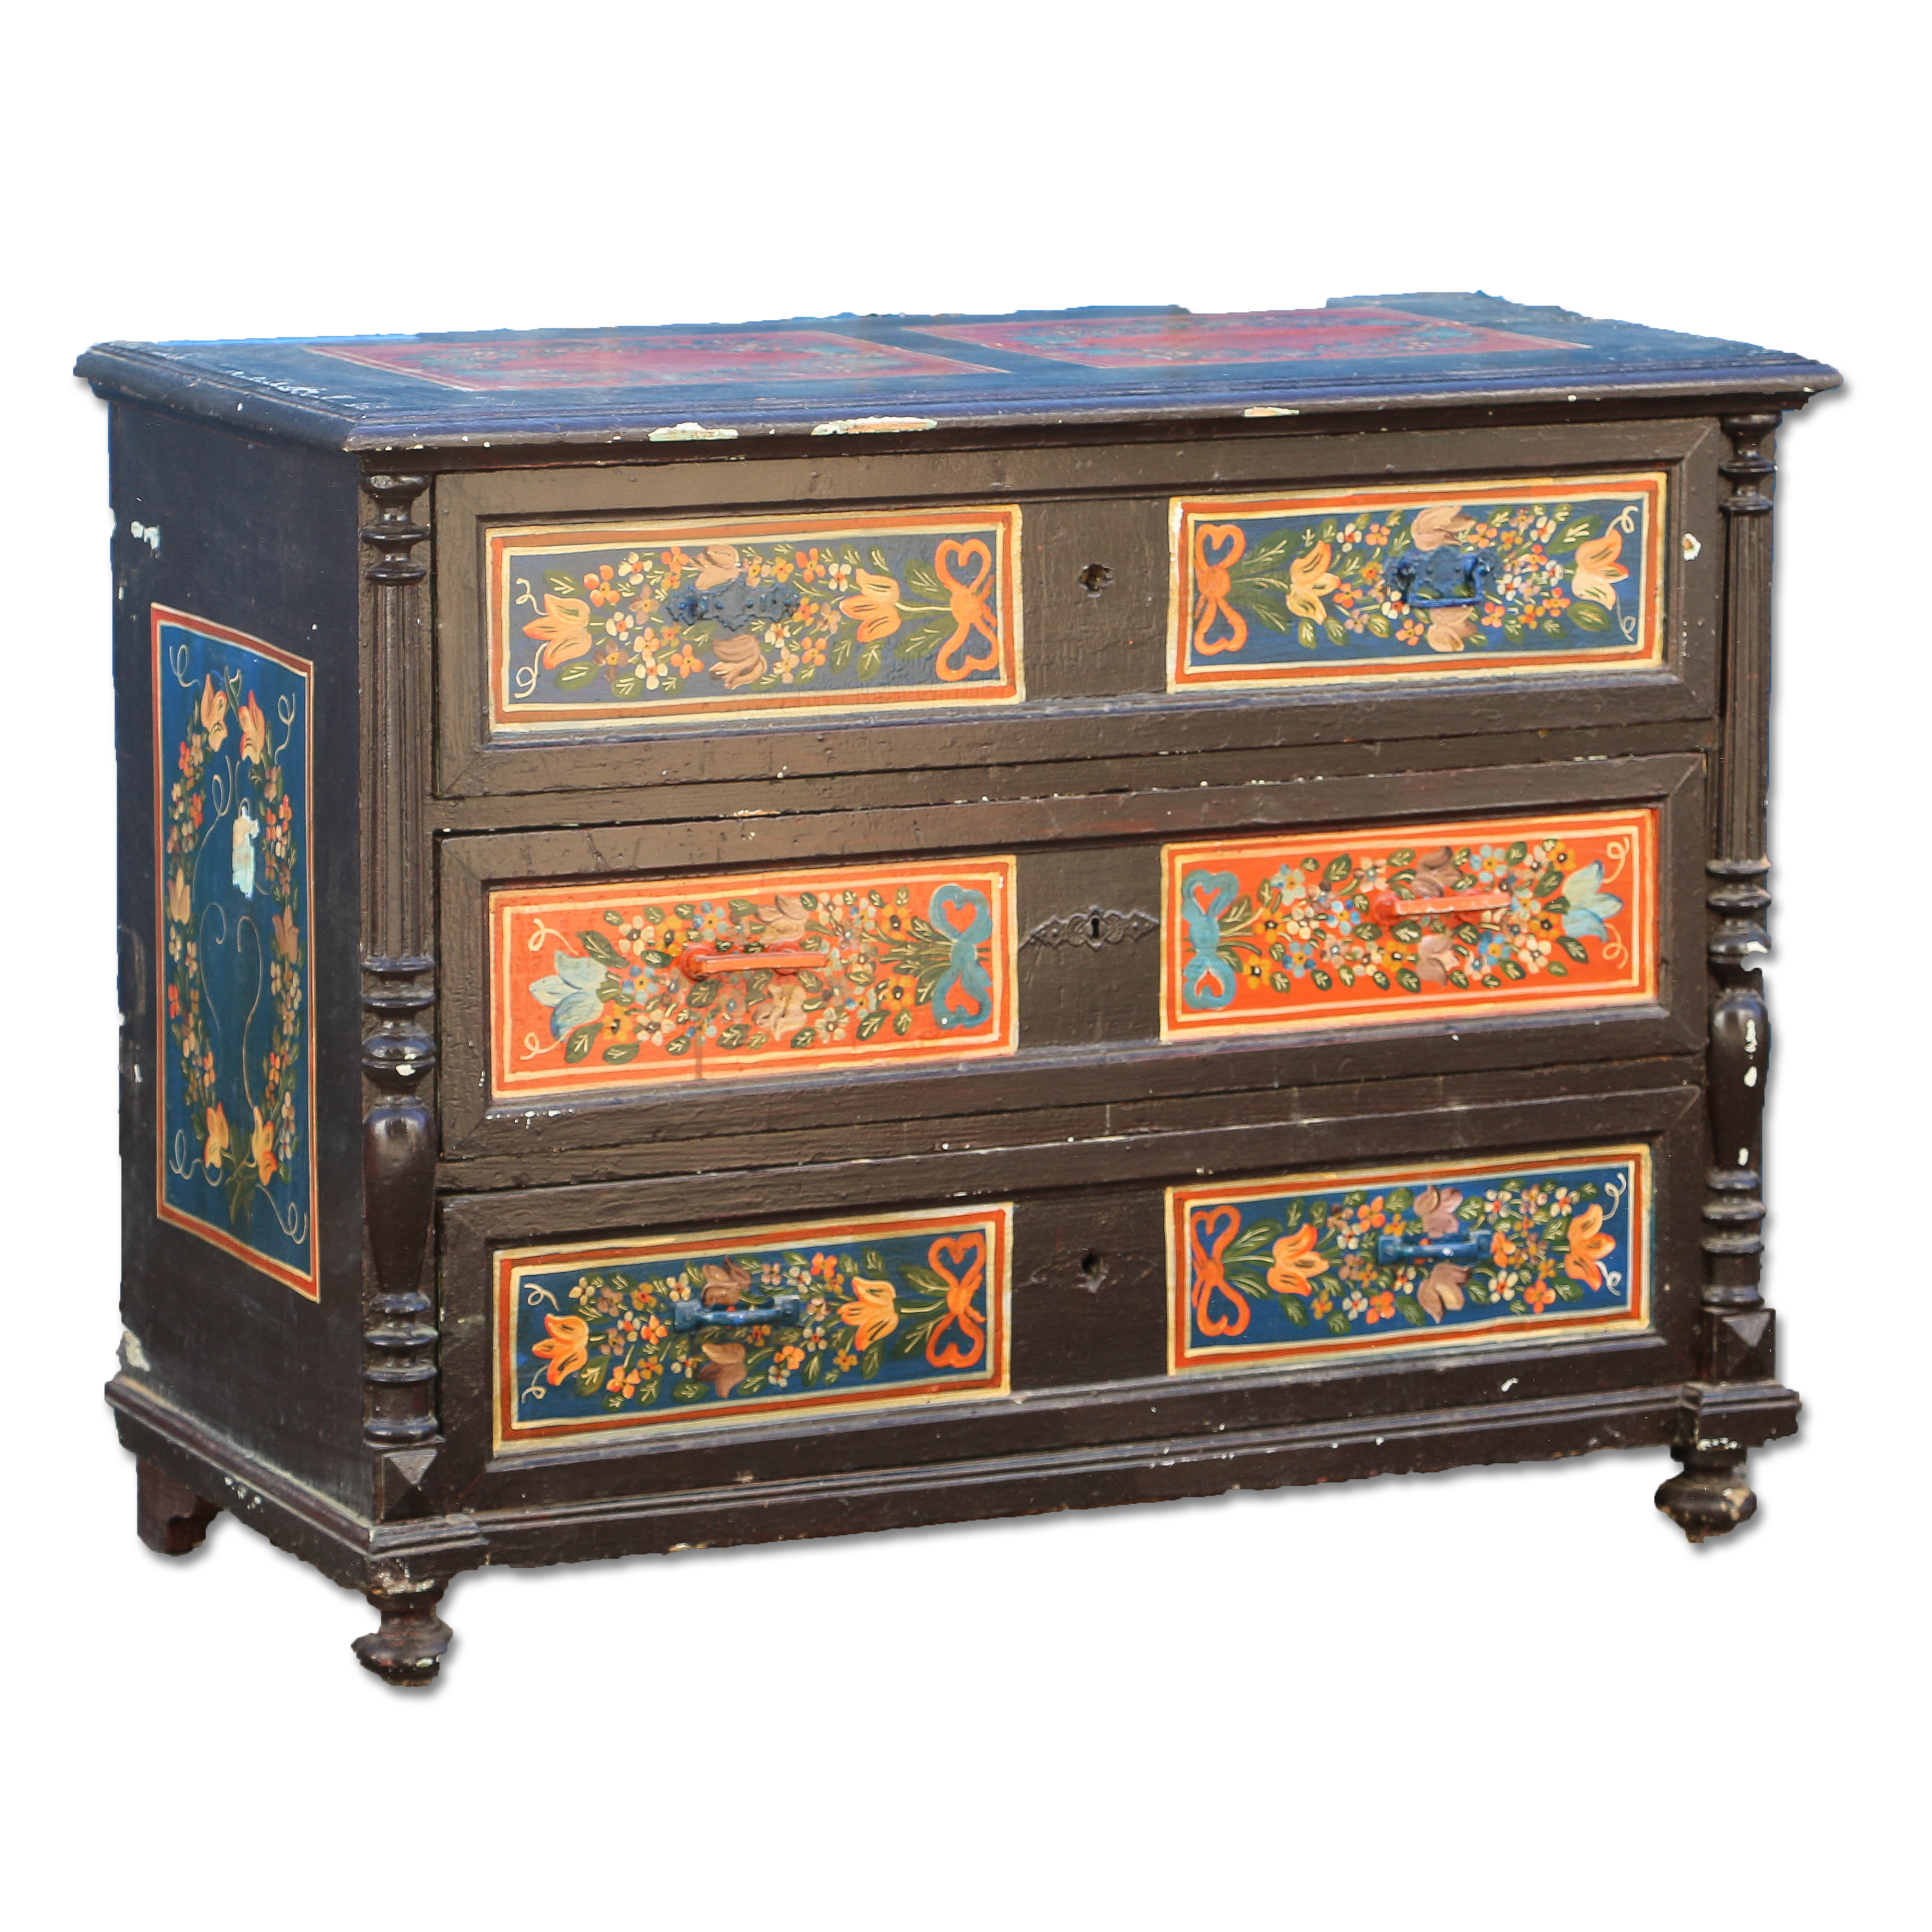 Antique Folk Art Painted Chest Of DrawersReturn To